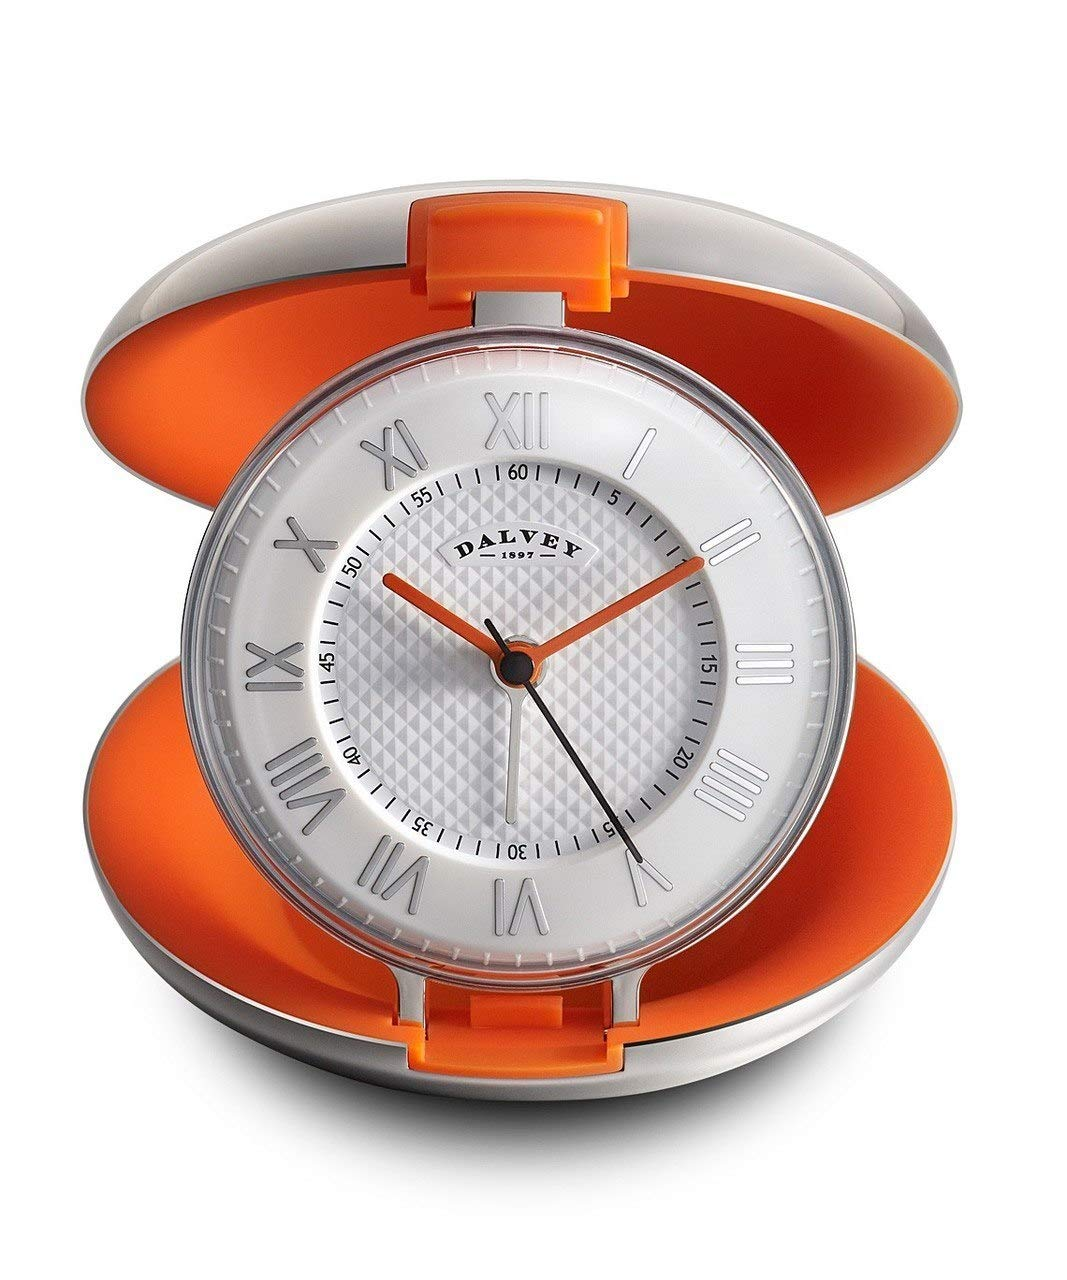 Dalvey Capsule Clock in Orange